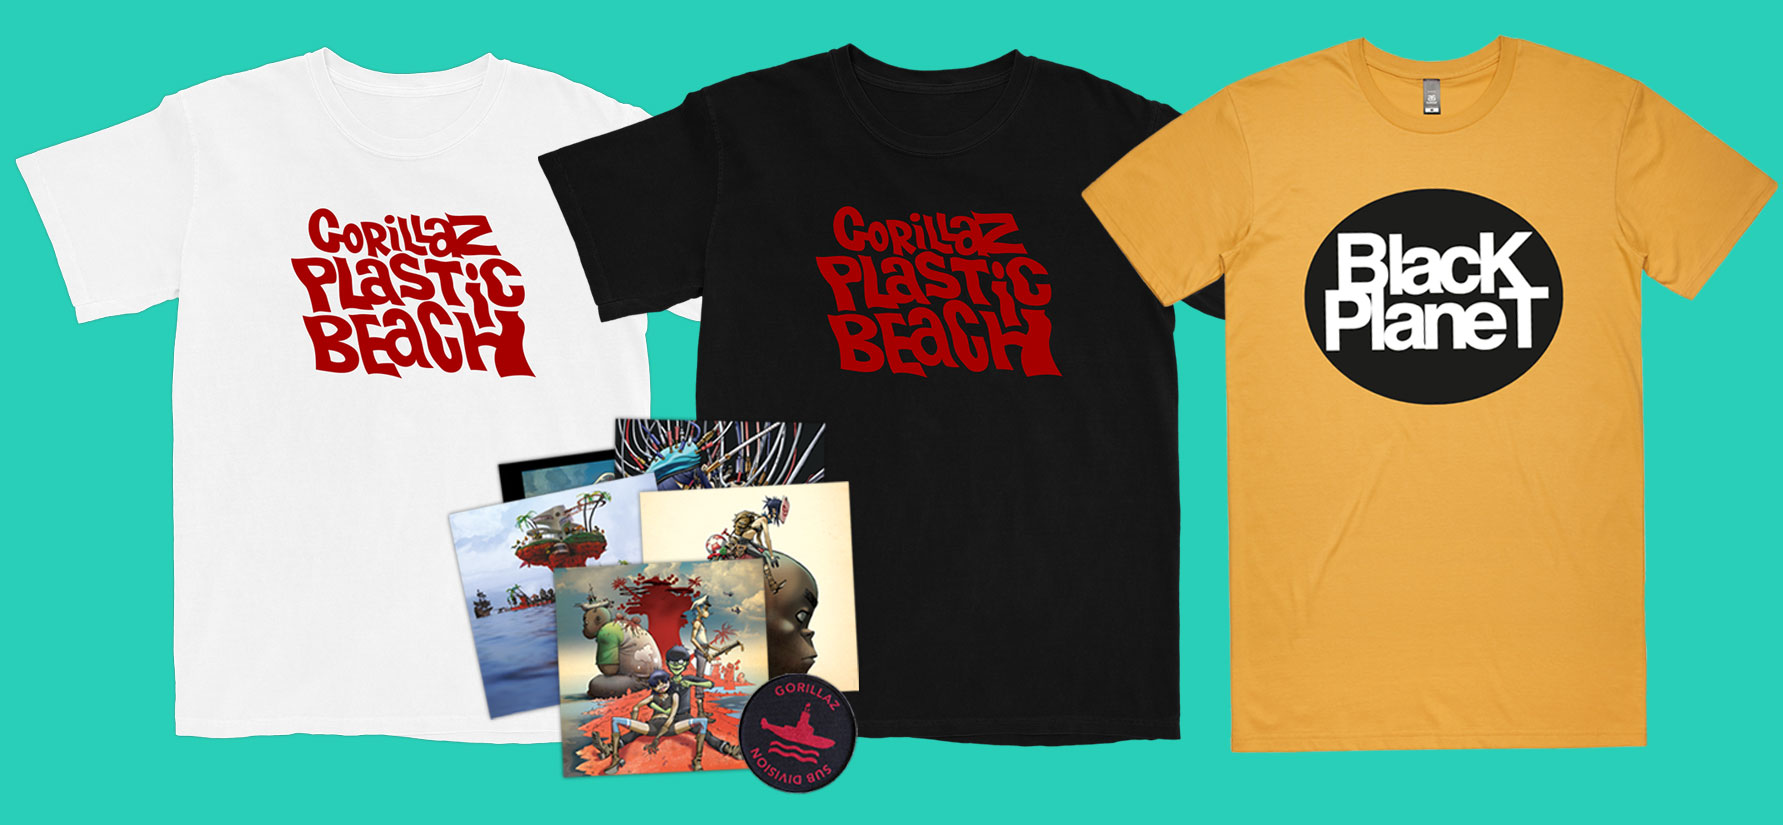 Plastic Beach merch